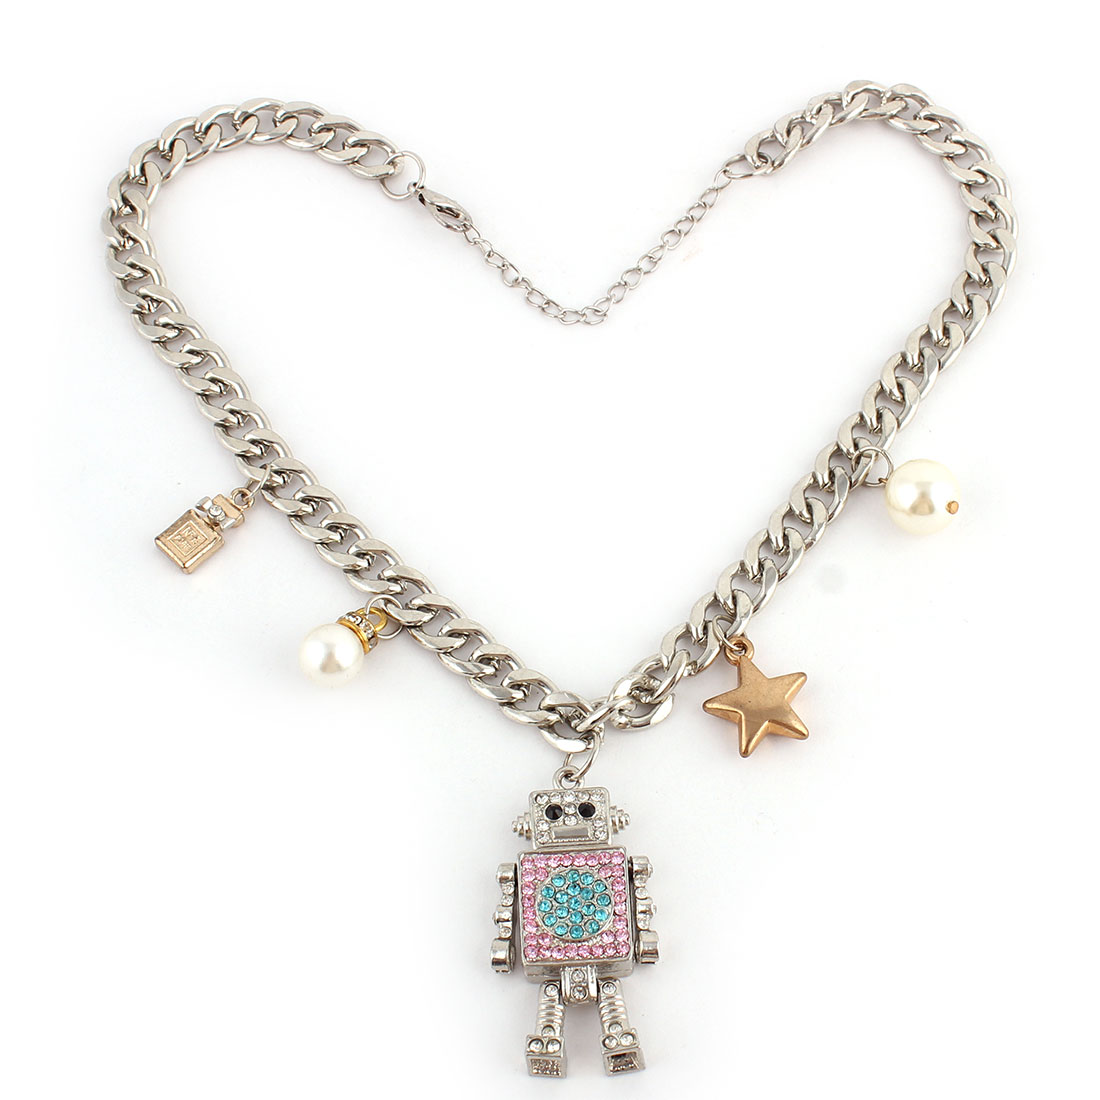 Lady Metal Chain Star Robot Designed Pendant Clothes Necklace Silver Tone